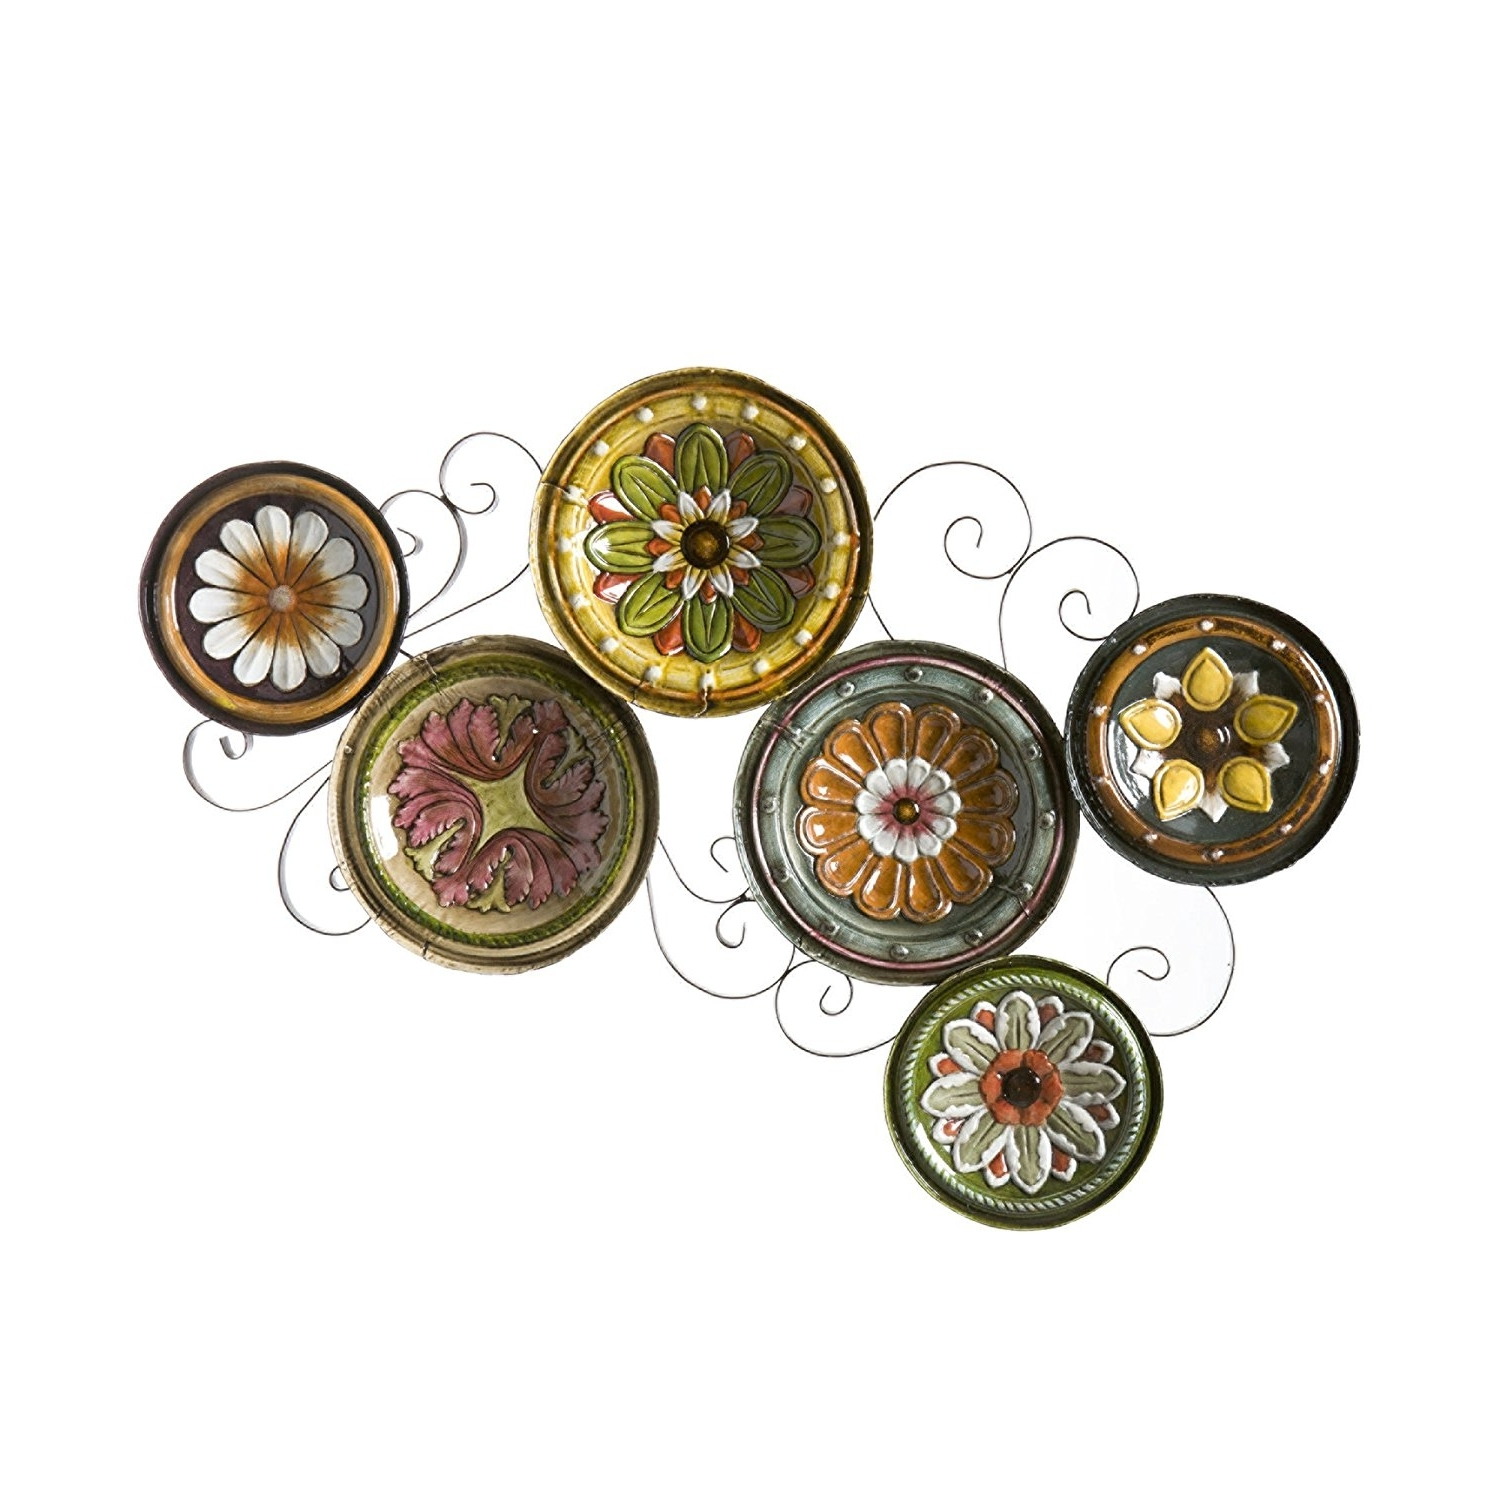 Amazon: Sei Scattered Italian Plates Wall Art: Wall Sculptures Regarding Most Current Italian Plates Wall Art (View 2 of 15)